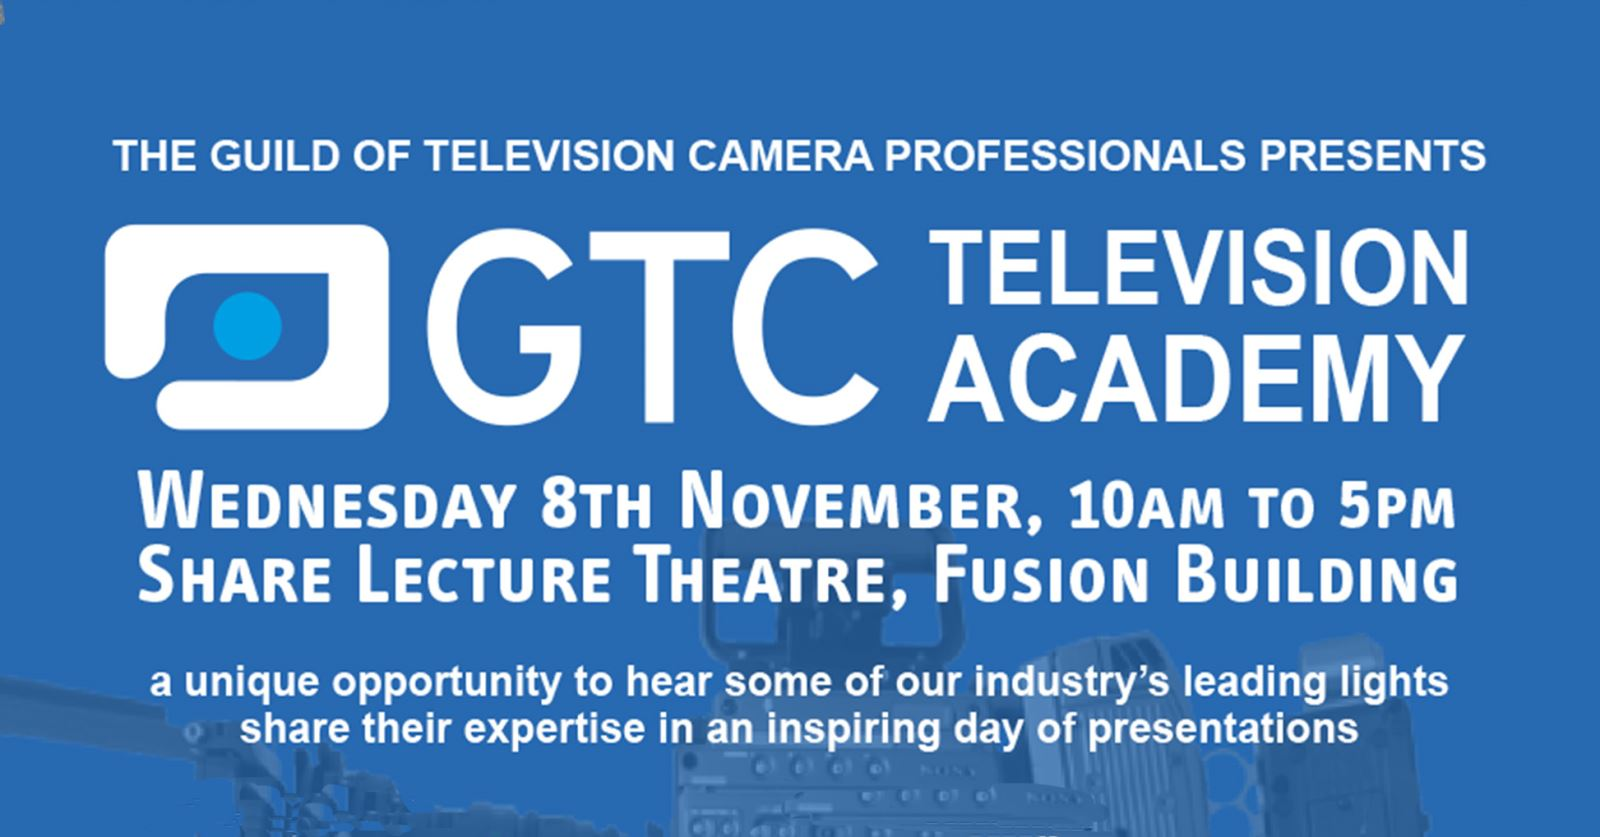 The first ever GTC TV Academy will take place at Bournemouth University on Wednesday 8 November